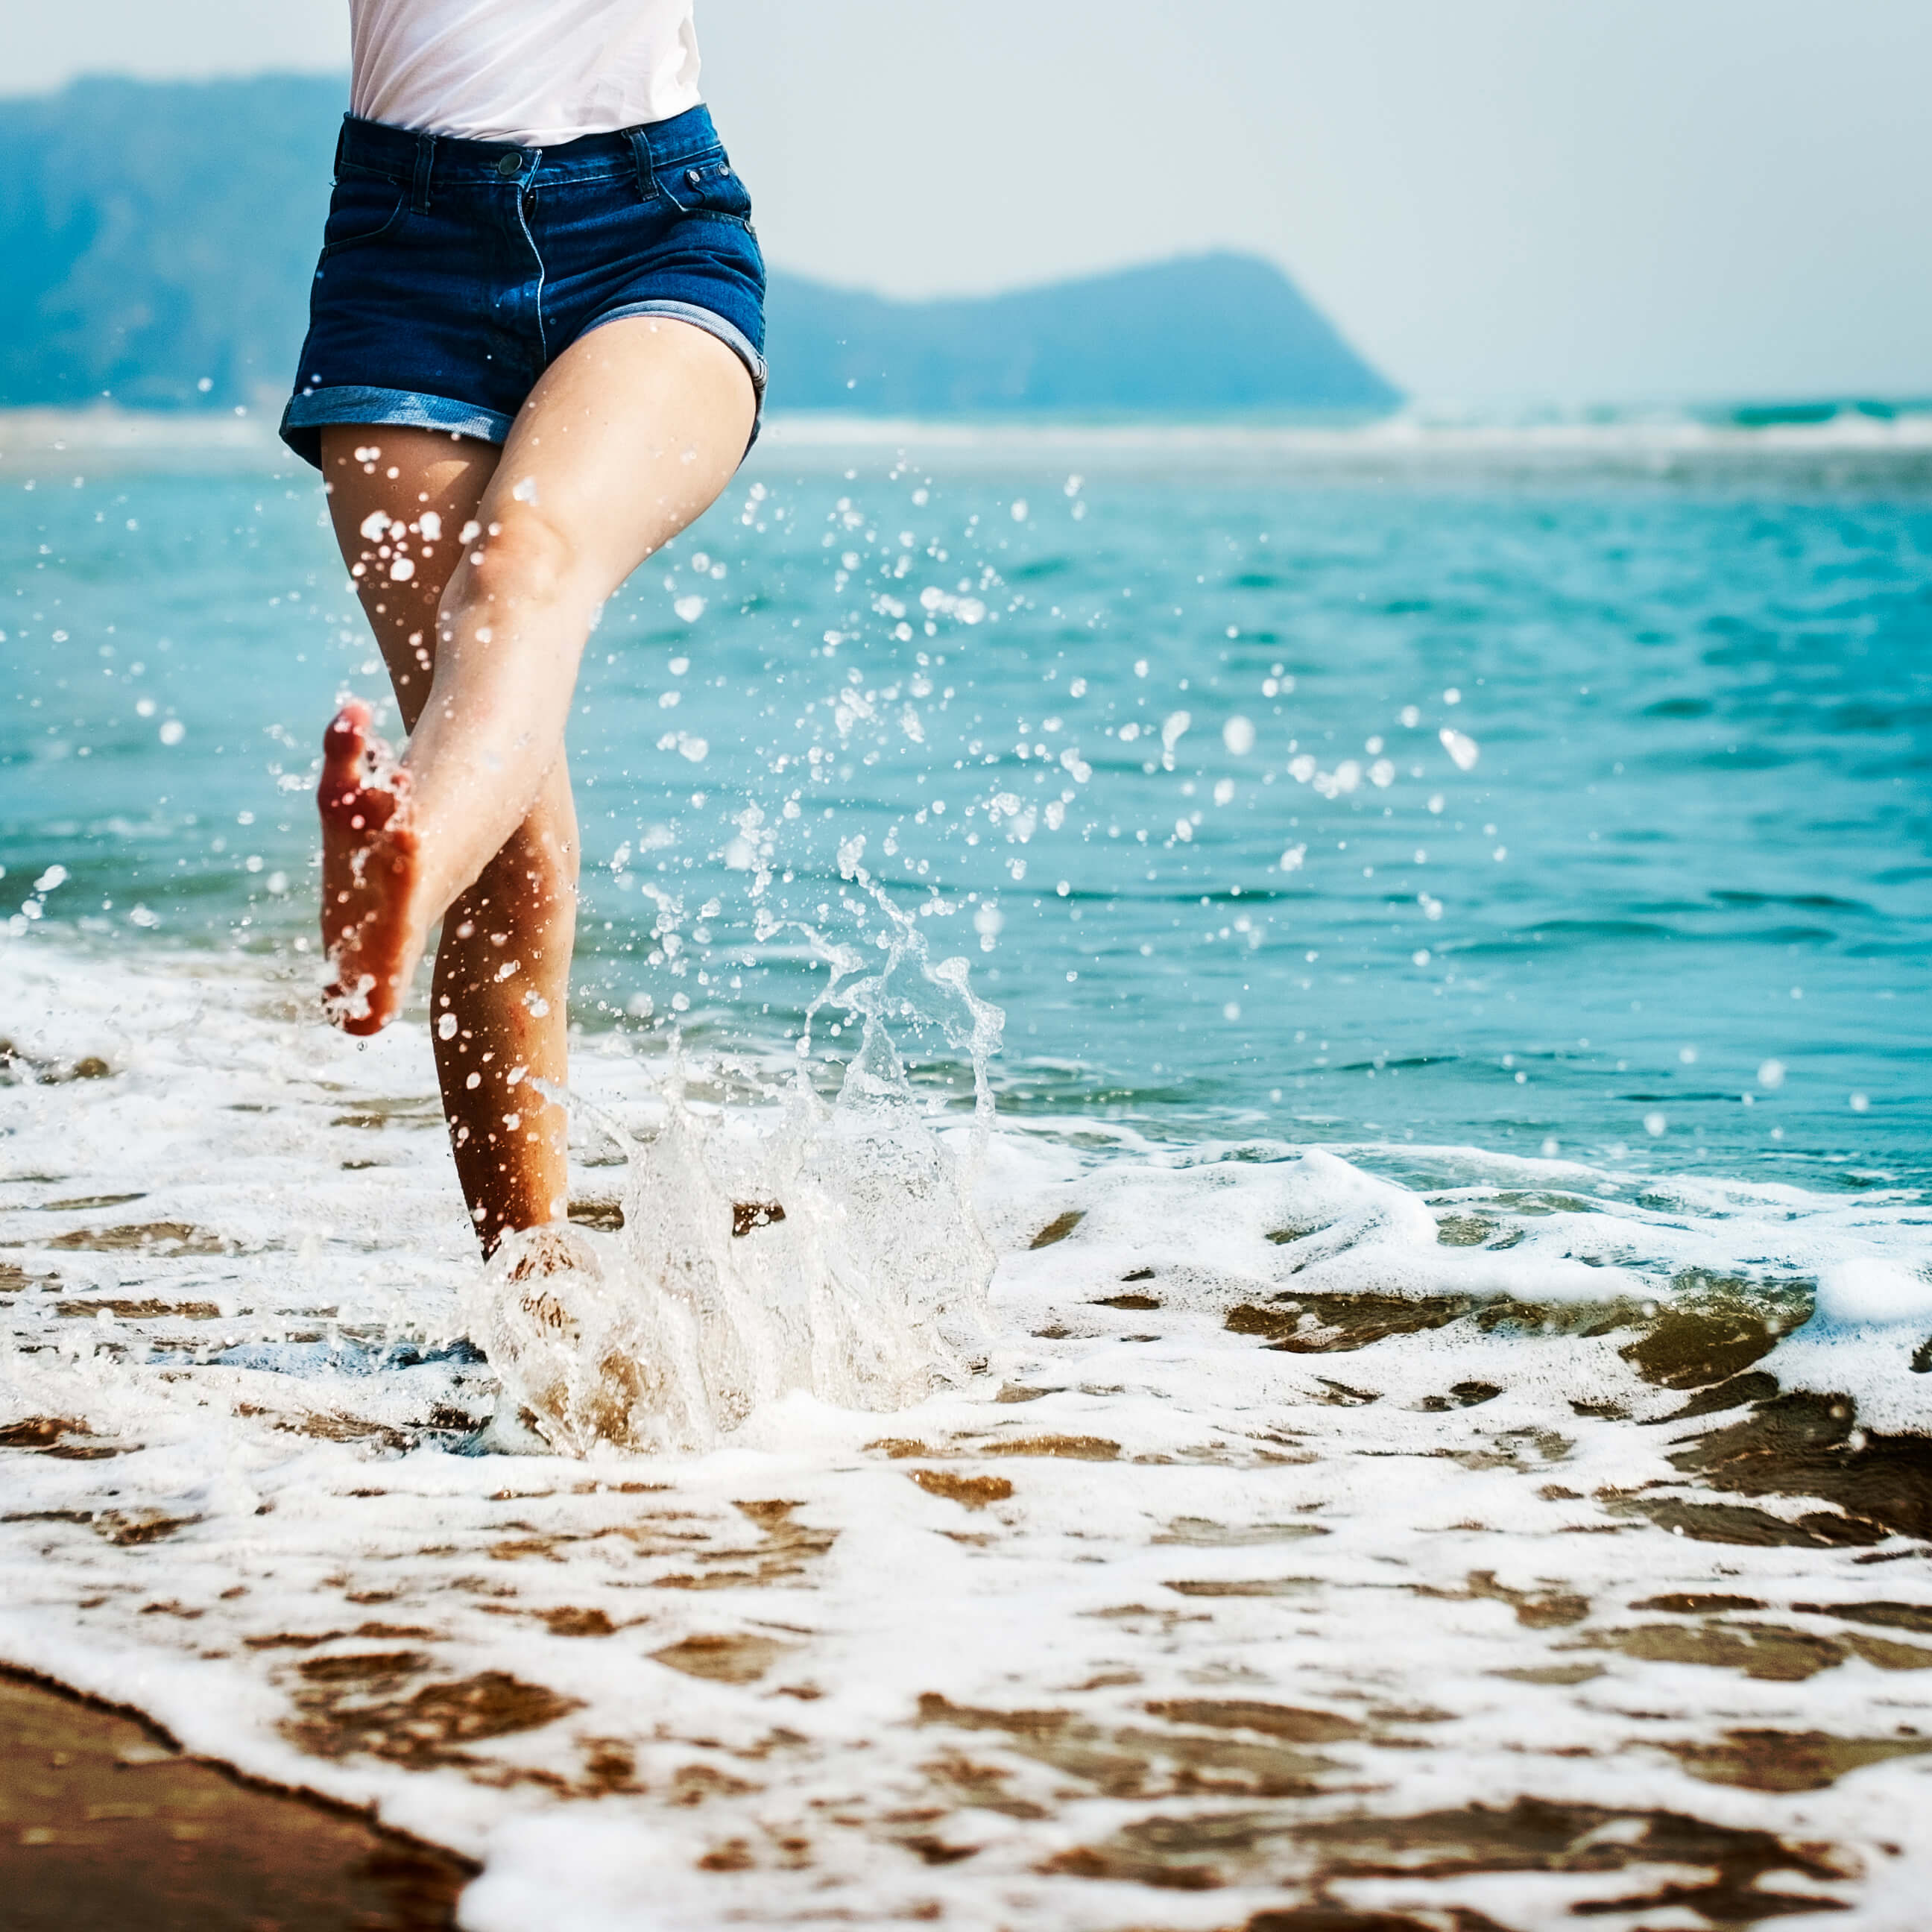 Barefoot in the surf